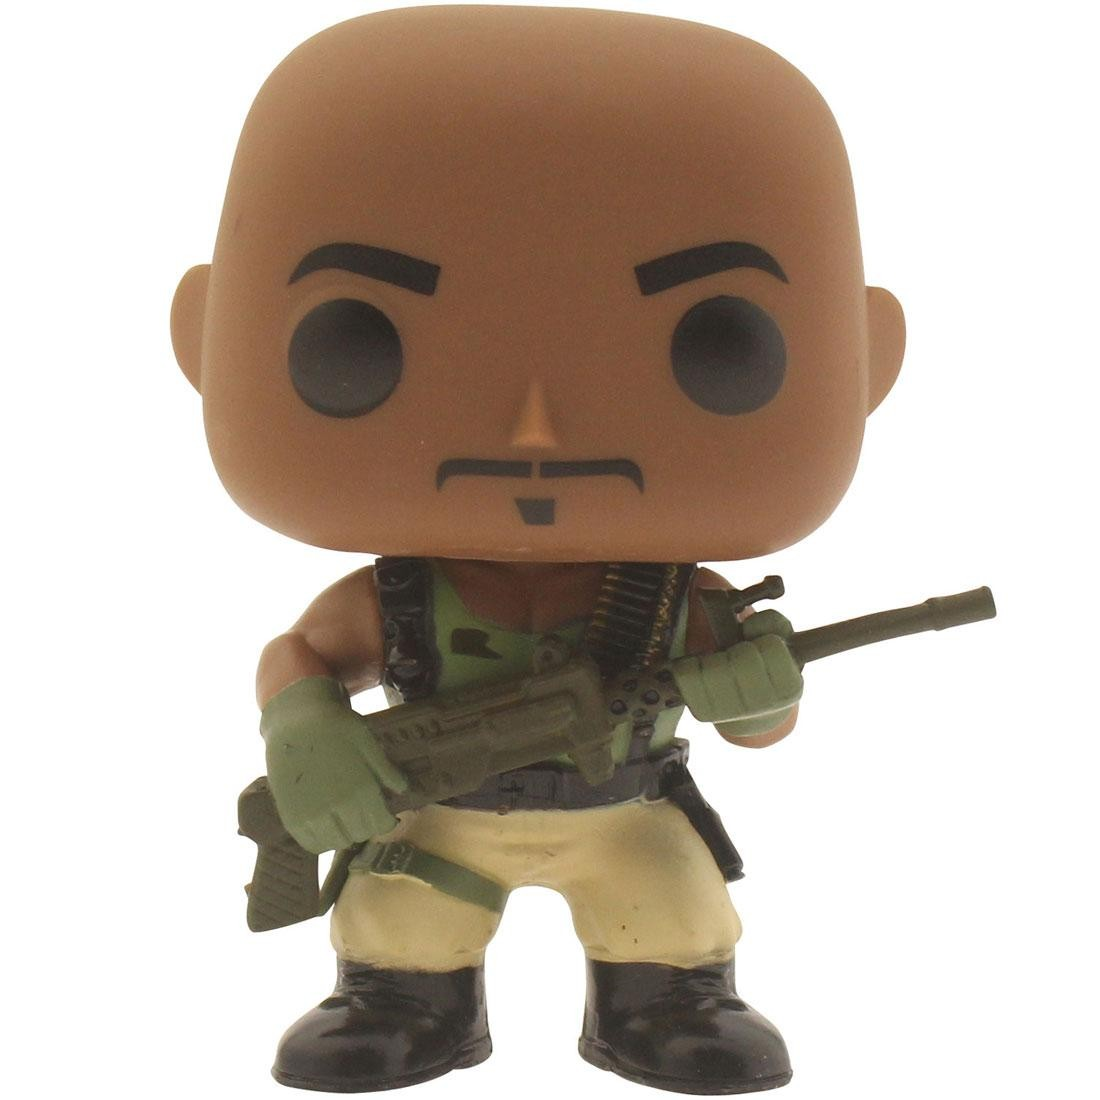 BAIT x Funko POP TV GI Joe Figure - Roadblock (camo)